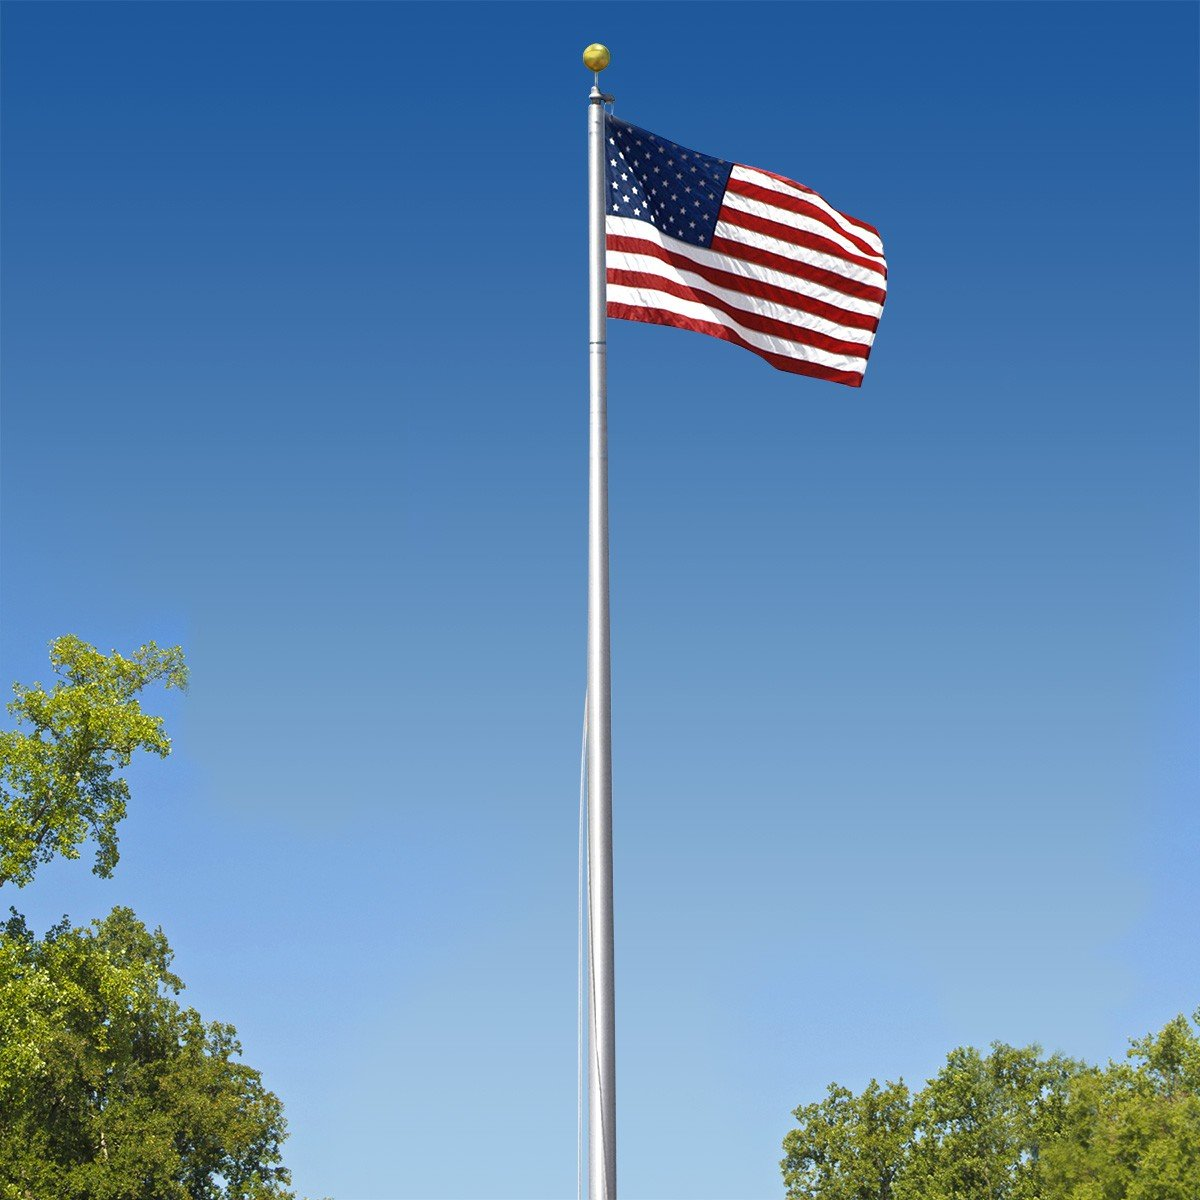 Super Tough Commercial Grade Sectional 20ft. Flagpole - Satin Finish - US Made by Super Tough